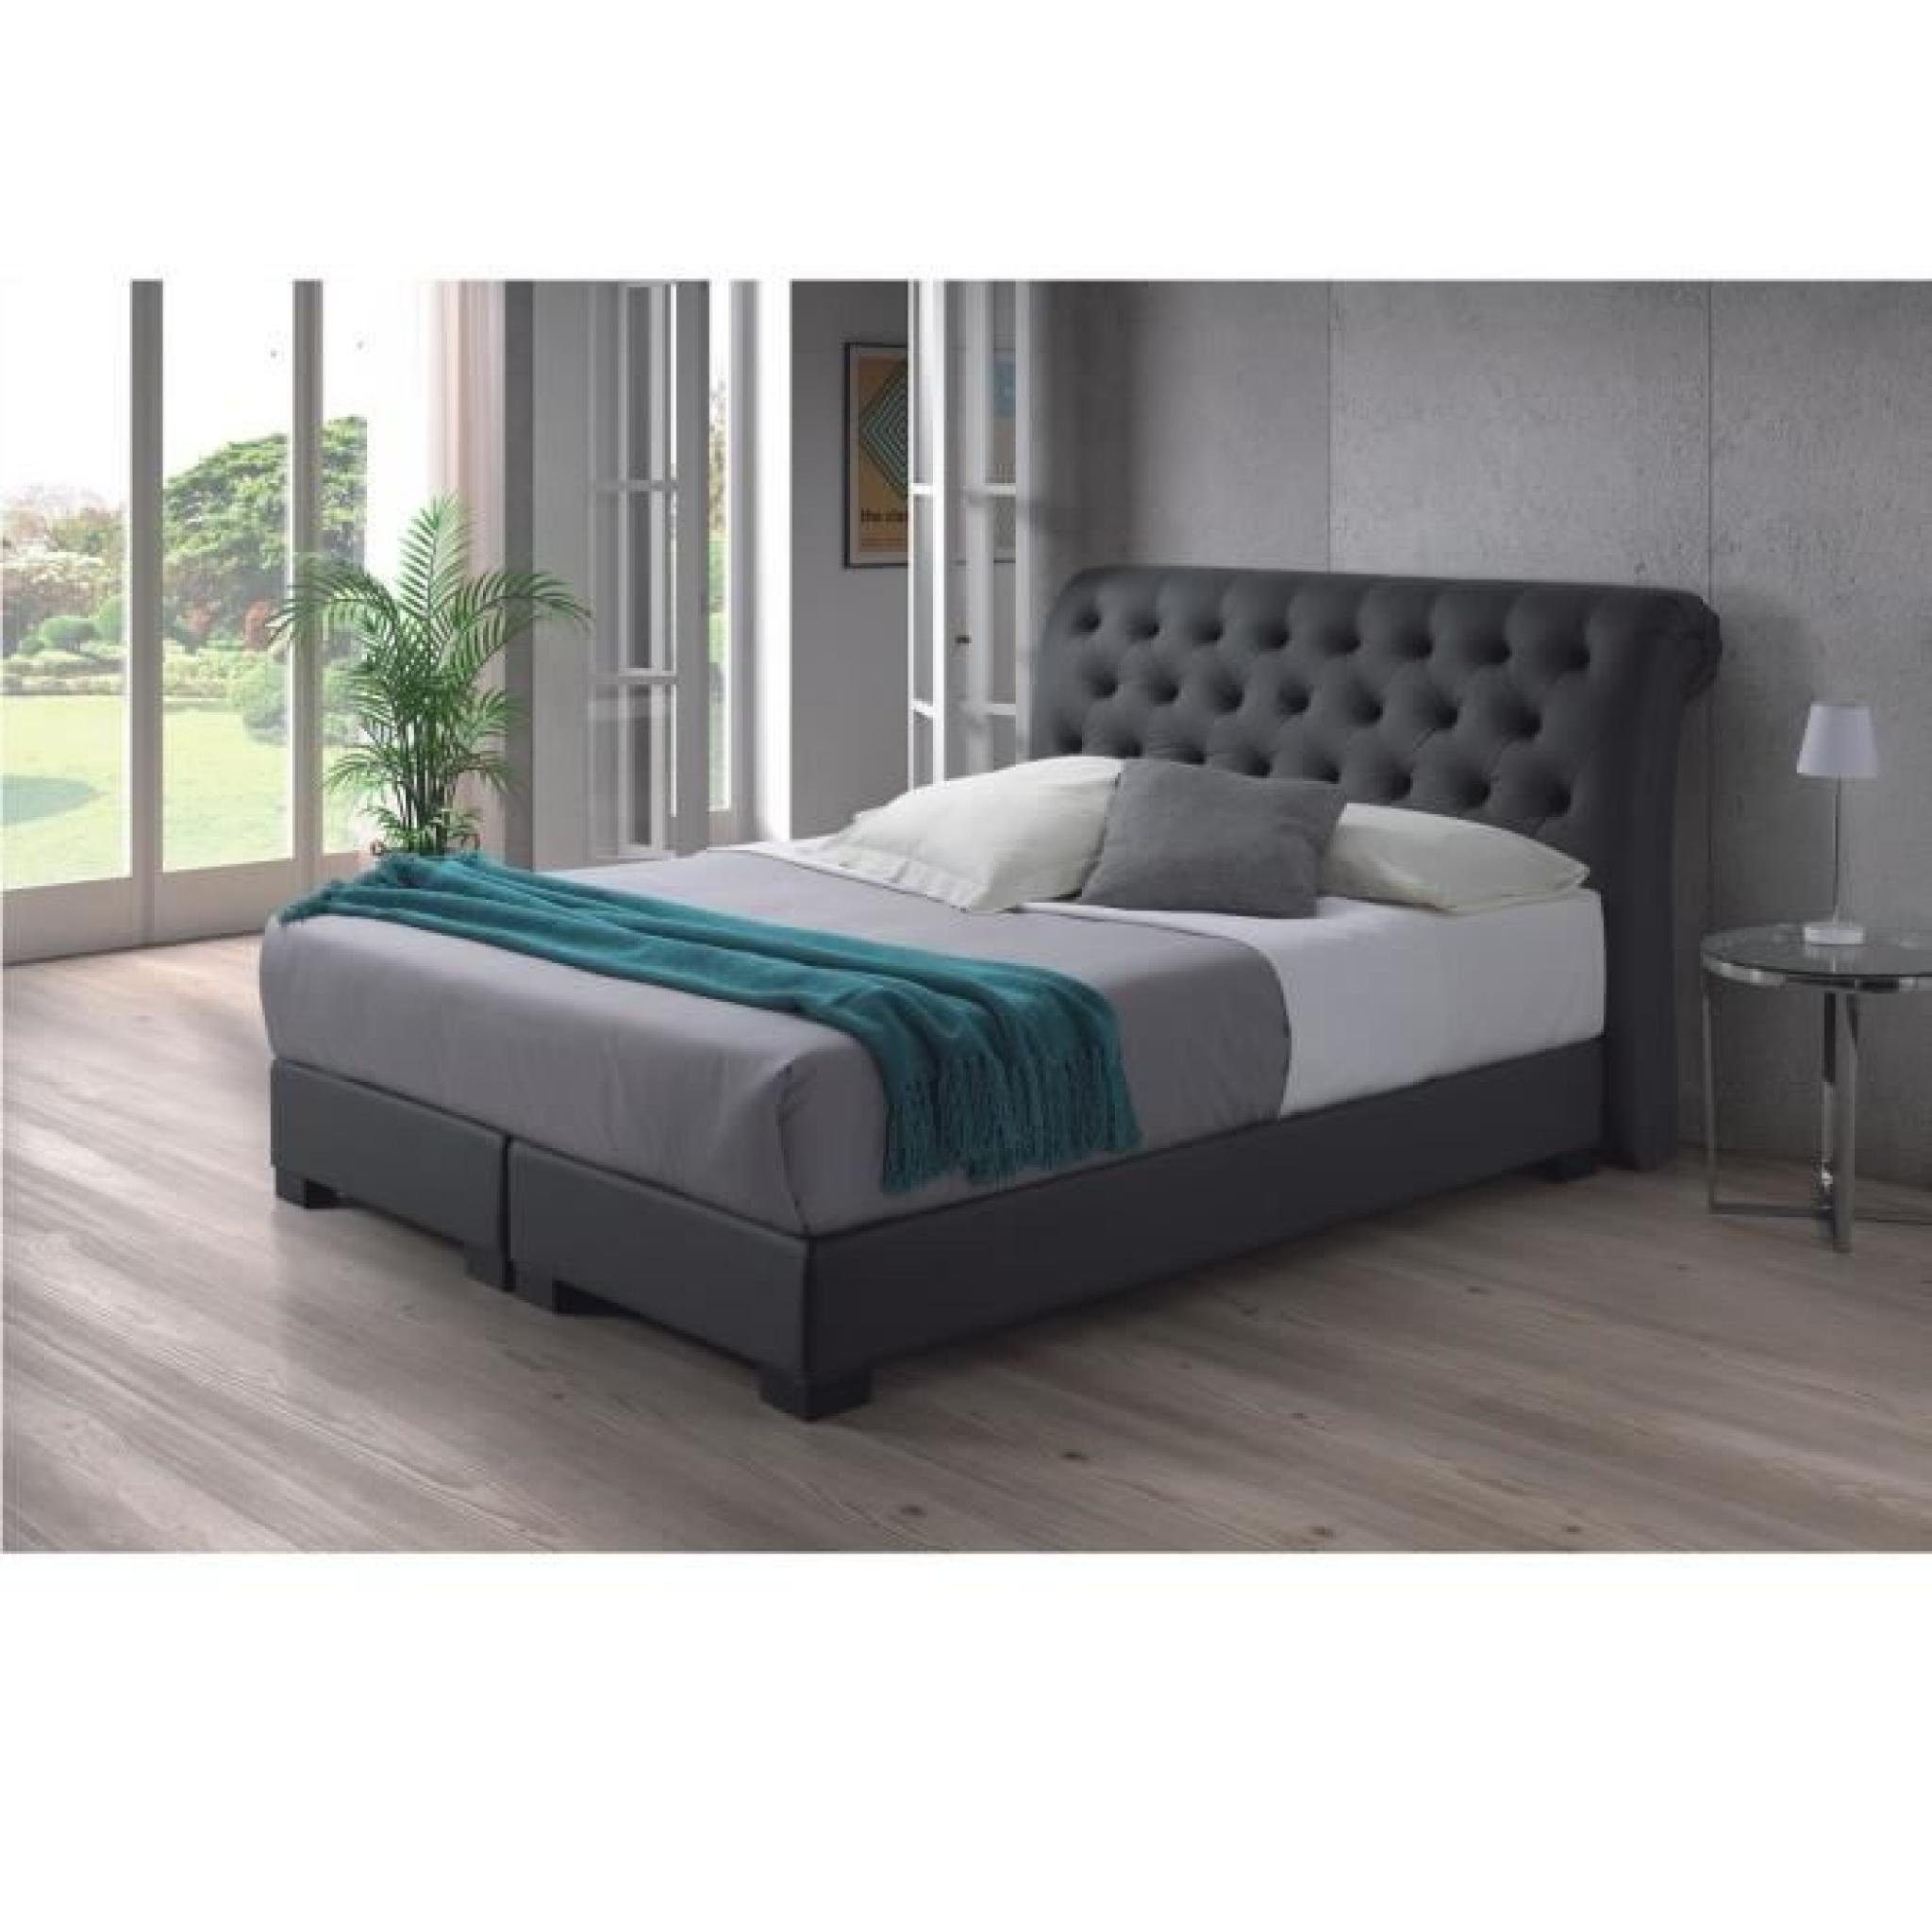 molly lit adulte 160x200 cm boxspring avec matelas gris. Black Bedroom Furniture Sets. Home Design Ideas